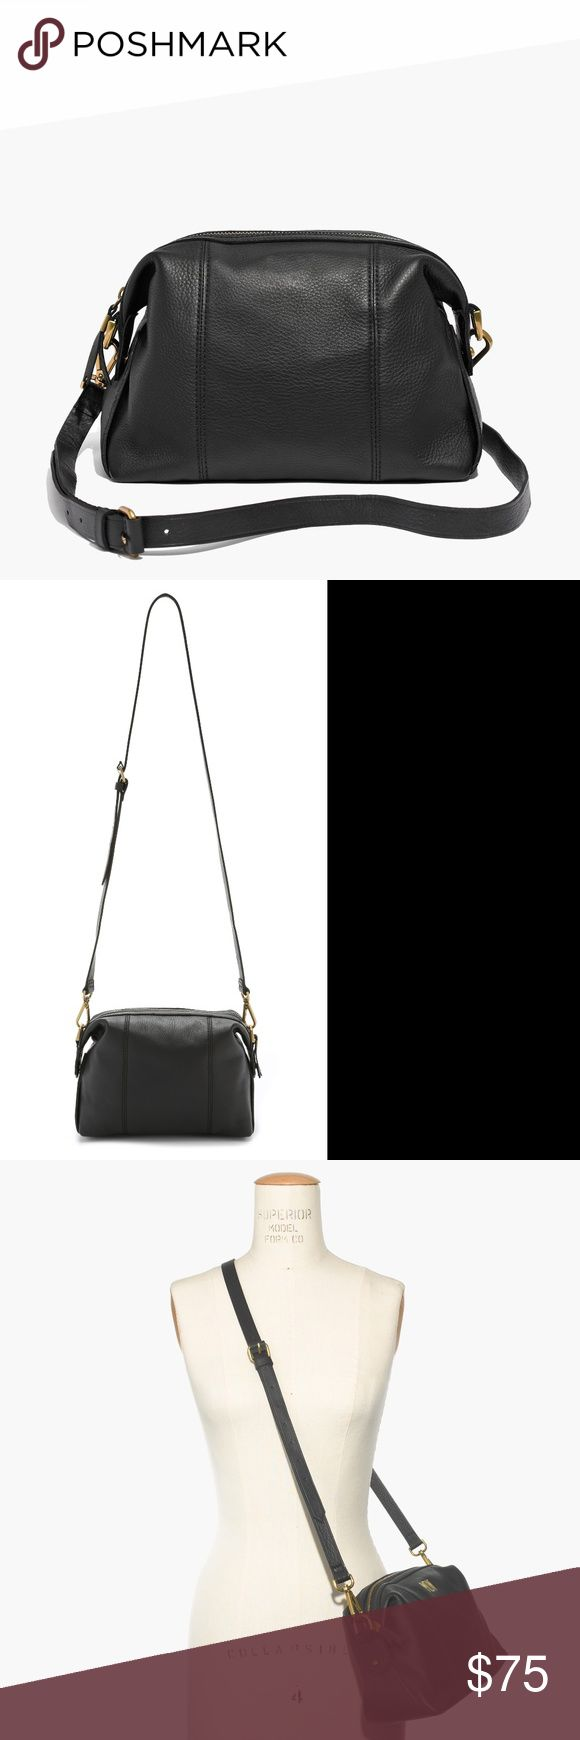 """Madewell The Mini Glasgow Crossbody Bag Black -in great condition! Minor signs of wear. No damage, tears, or stains. Clean inside with zipper pocket  Our go-anywhere bag in a new smaller size (that holds a surprising amount of stuff). Made of supersoft leather, this duffel-inspired design has a sturdy removable shoulder strap. Finished with our signature collar stud closures, this is one you'll have in your life for a long, long time—it's pretty much a shortcut to polish.   Leather. 21 1/2""""…"""